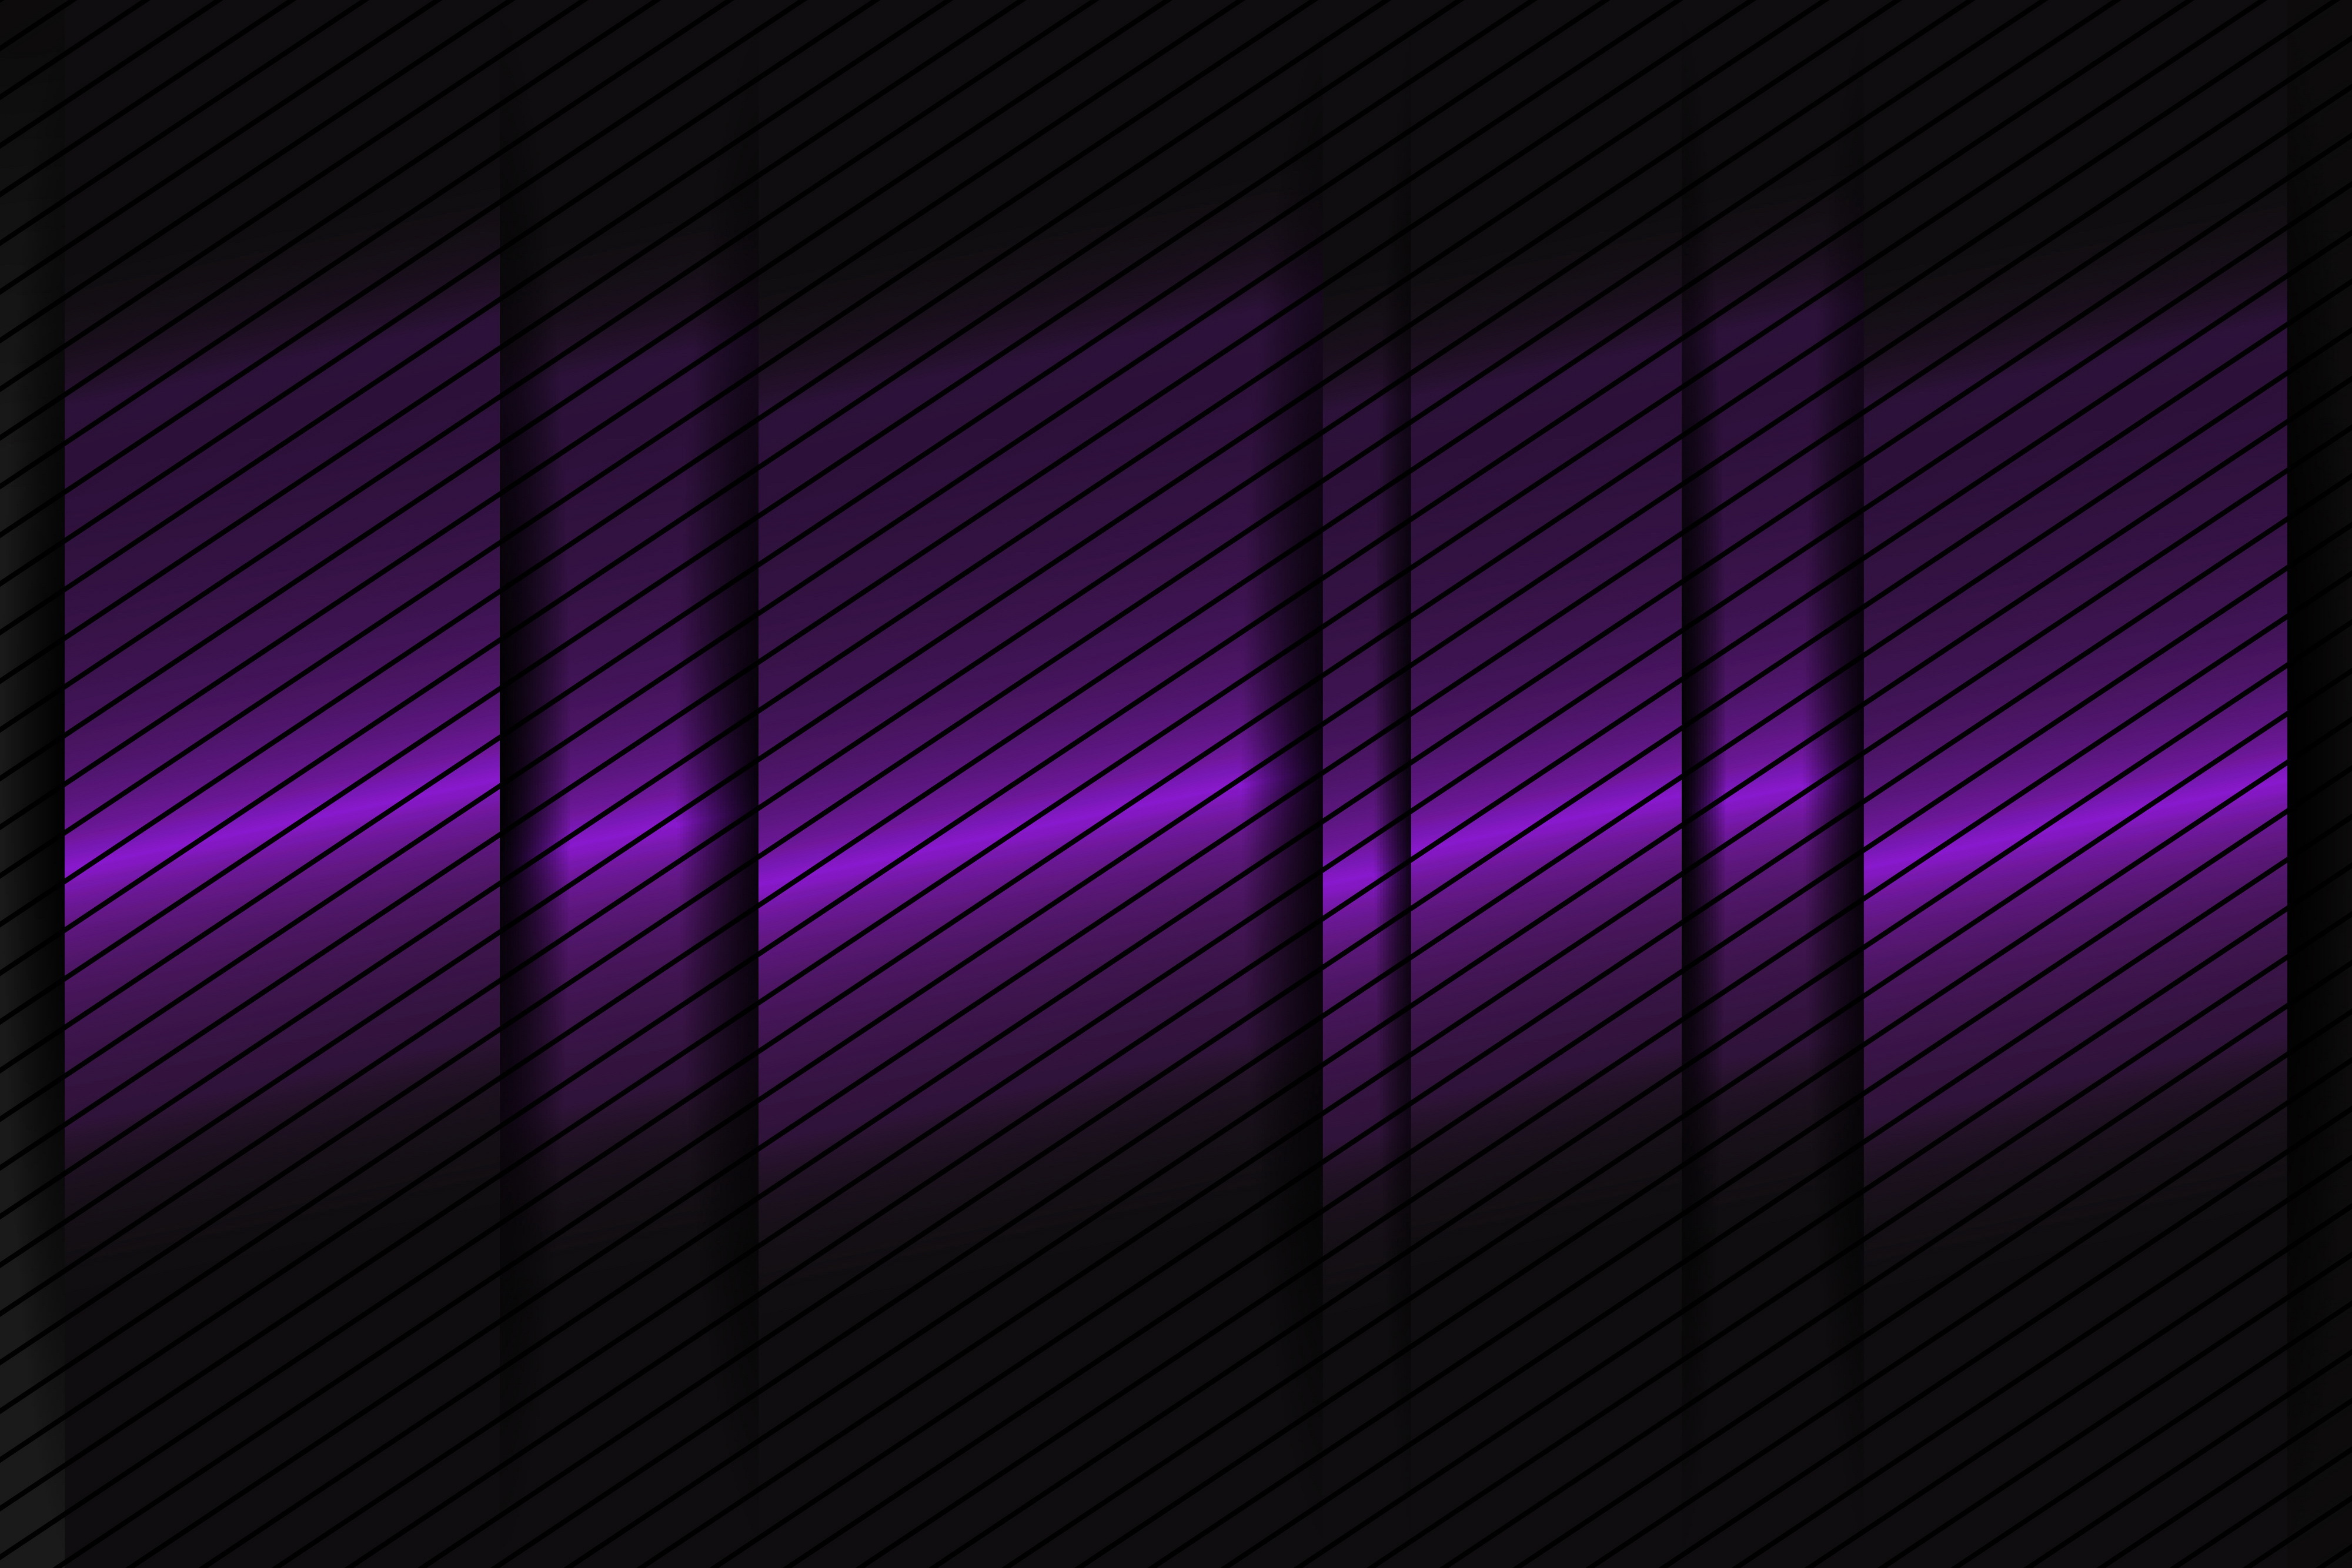 Abstract Purple 20k Ultra HD Wallpaper   Background Image   20000x20